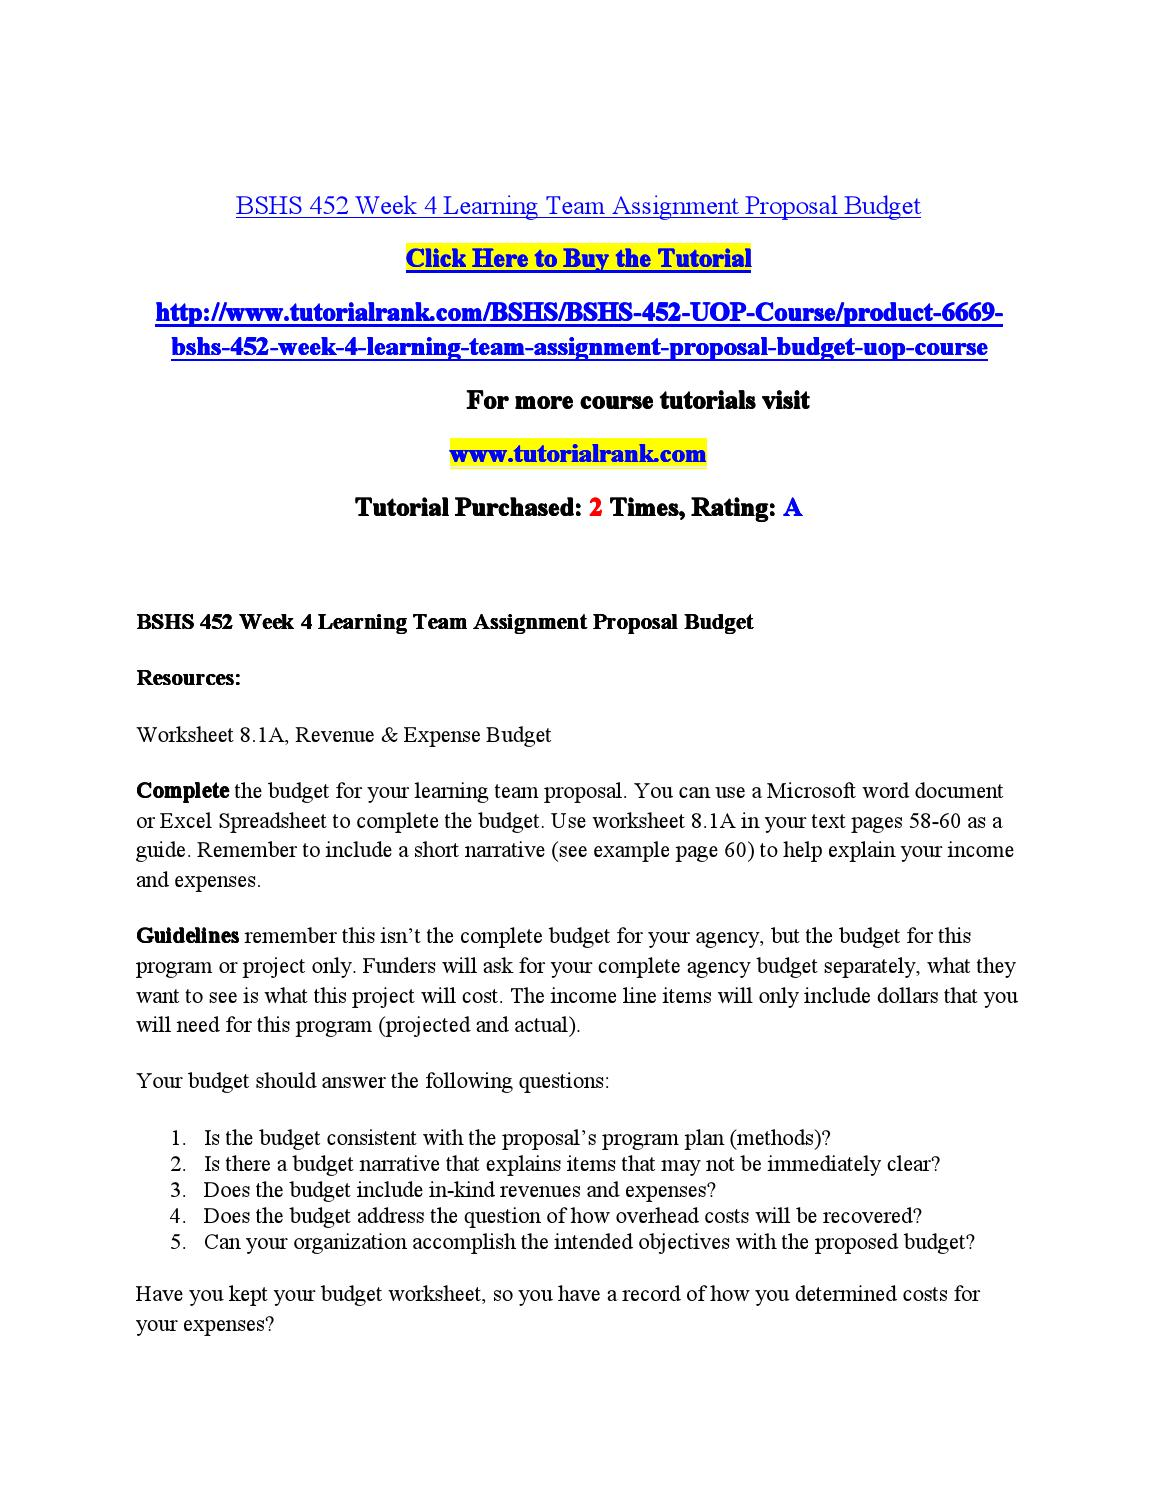 Bshs 452 week 4 learning team assignment proposal budget by